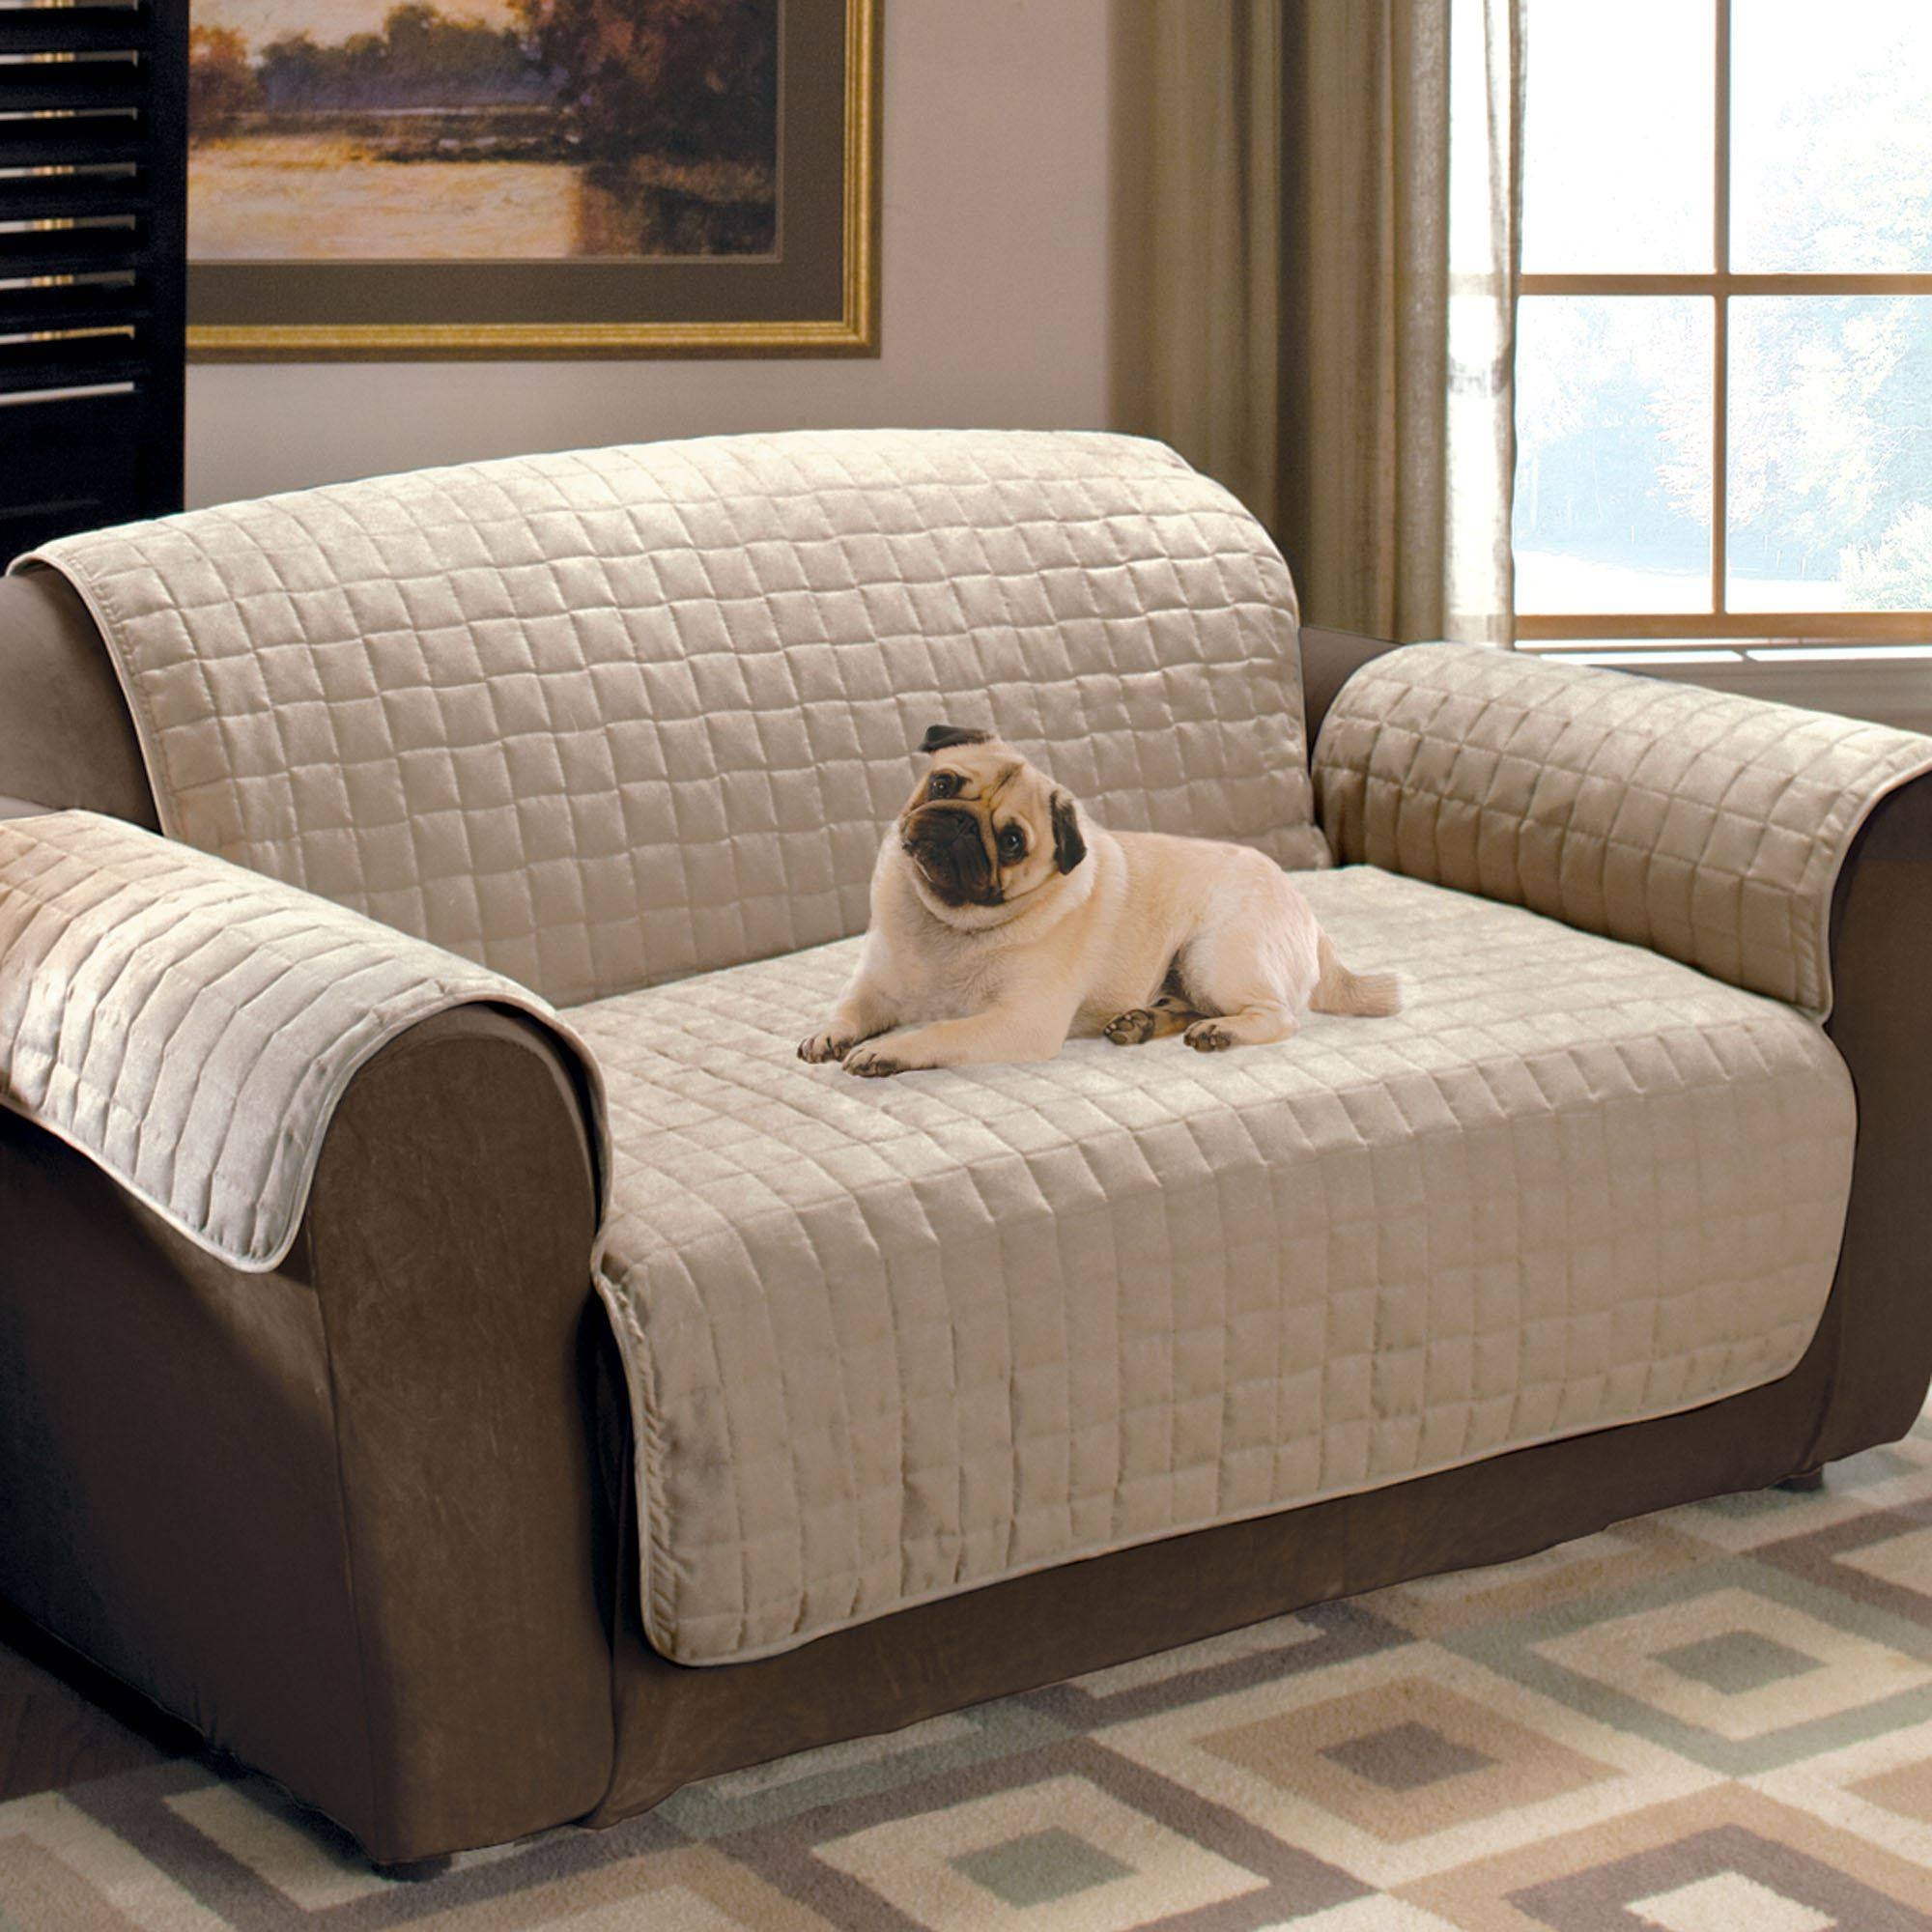 Mainstays Reversible Microfiber Fabric Pet/furniture Sofa Cover throughout Covers For Sofas (Image 20 of 30)